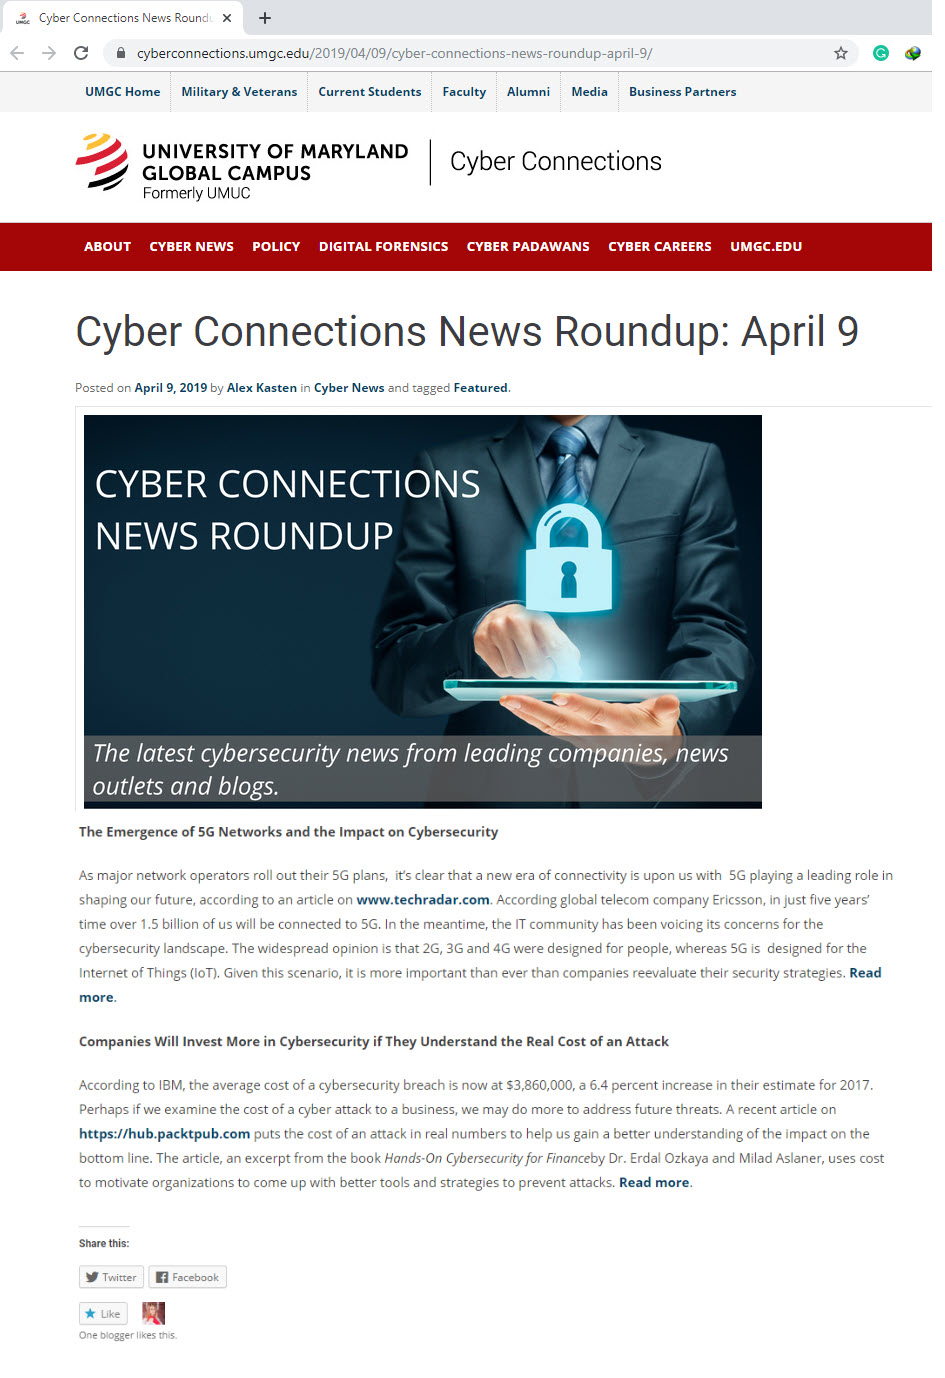 Cyber Connections News: University of Maryland